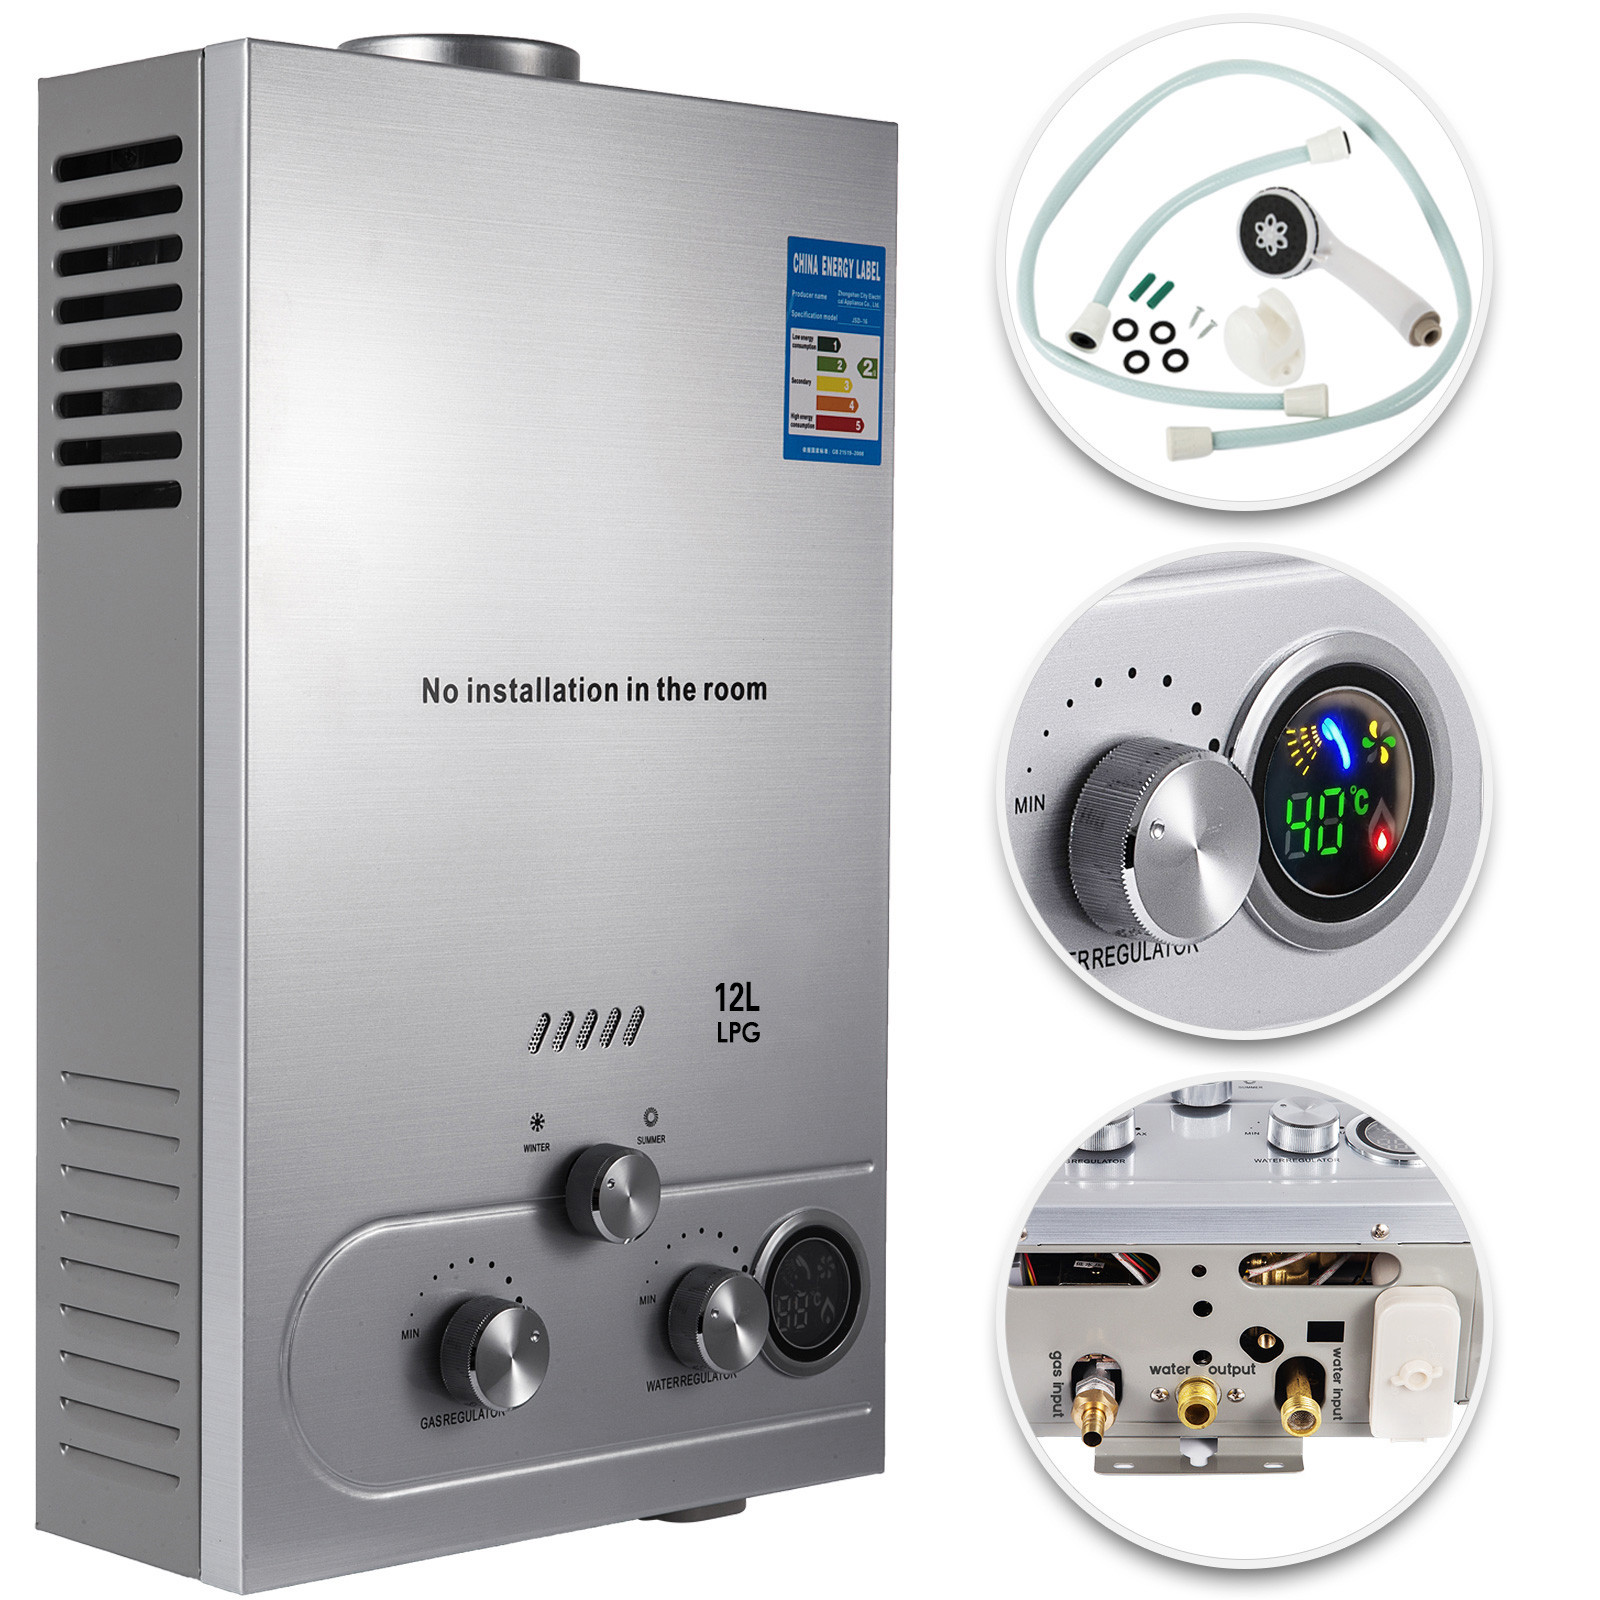 12L Tankless Propane Gas LPG Instant On-Demand Hot Water Heater With Showers